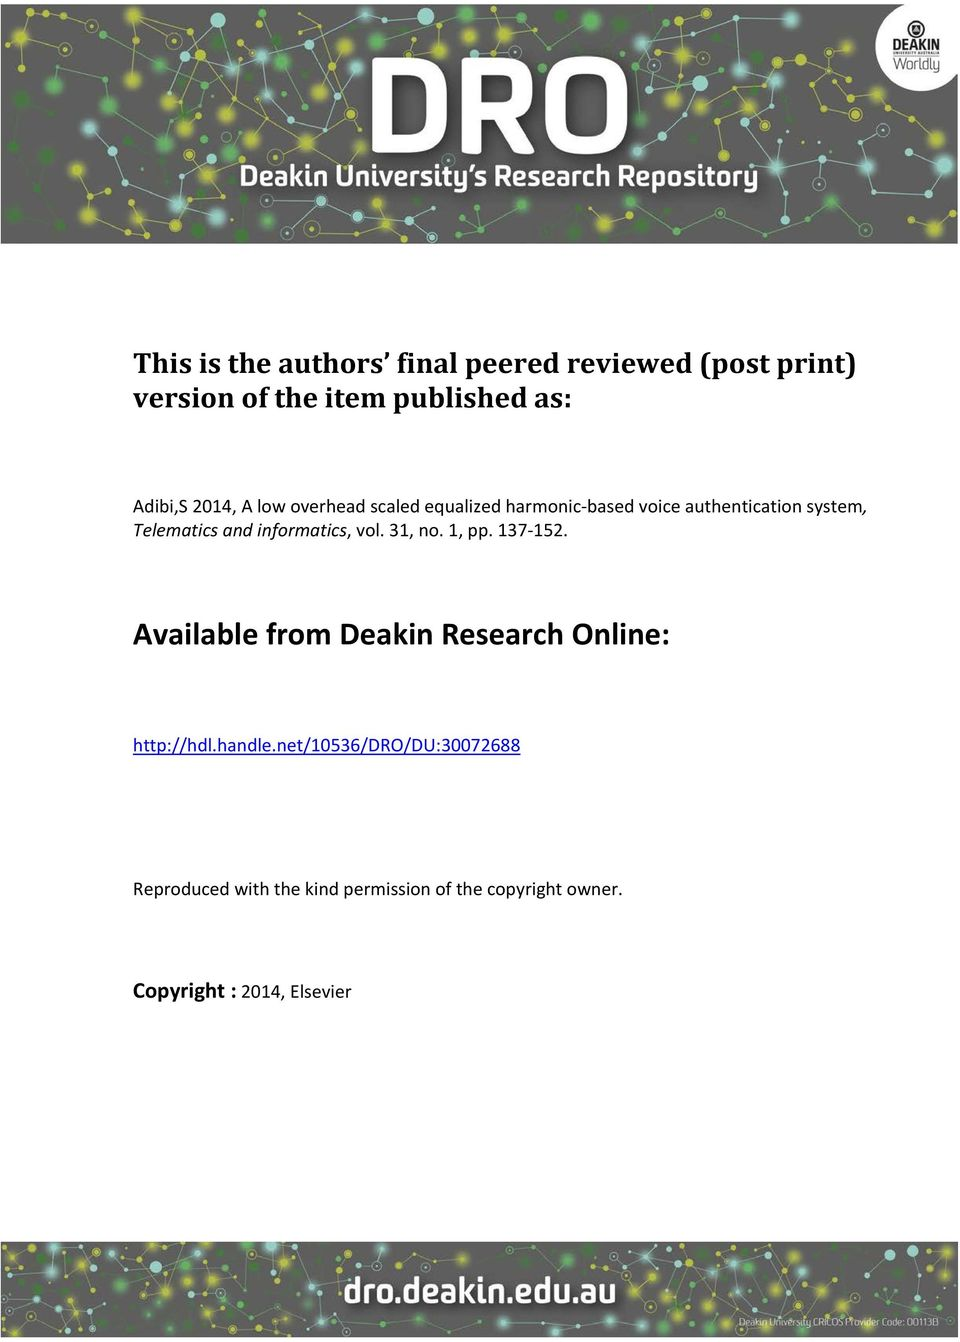 informatics, vol. 31, no. 1, pp. 137-152. Available from Deakin Research Online: http://hdl.handle.